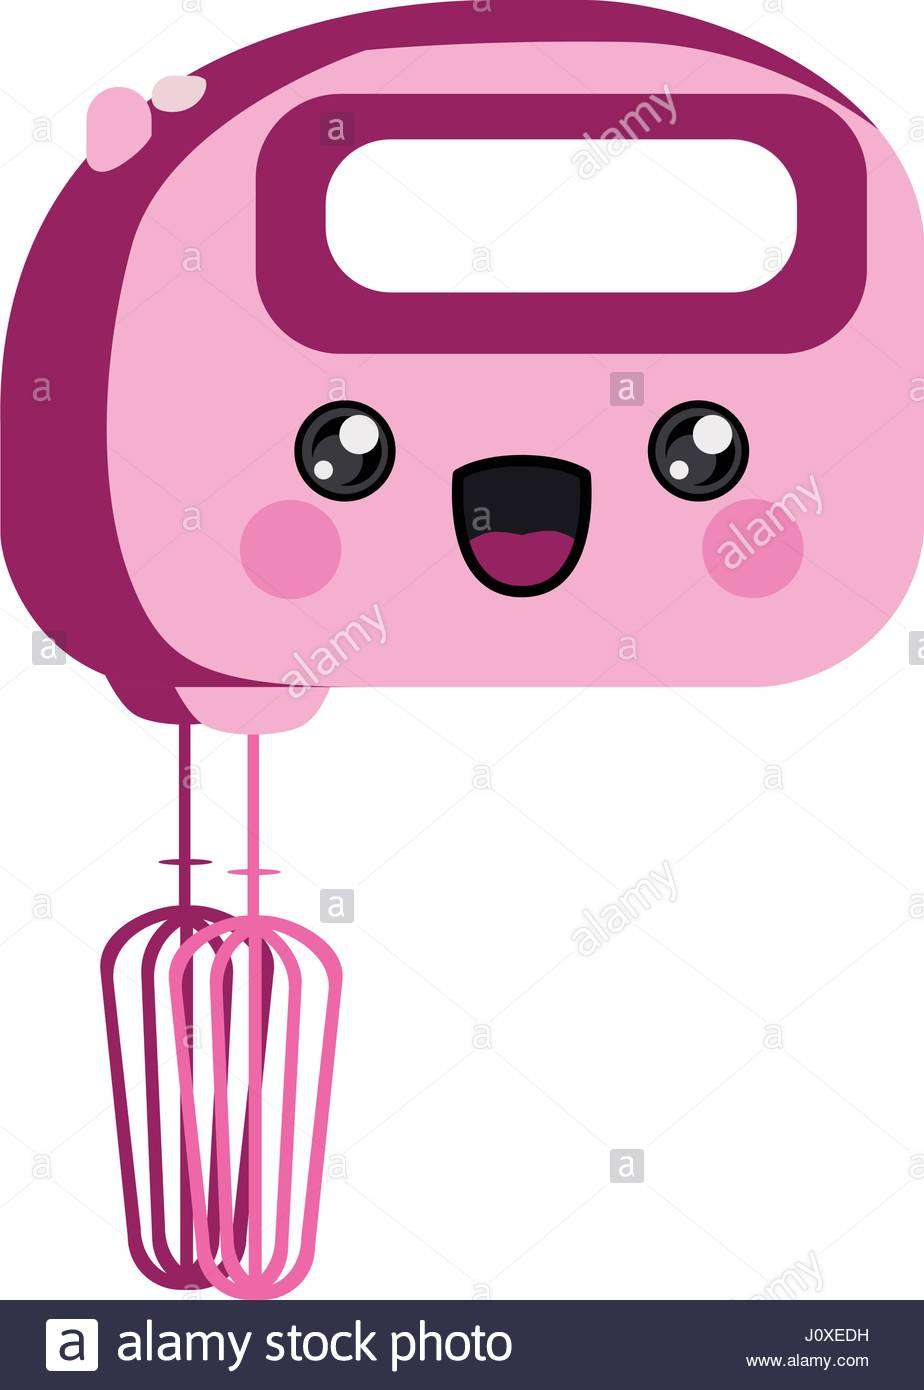 924x1390 Pink Color Silhouette Of Cartoon Kitchen Mixer Stock Vector Art